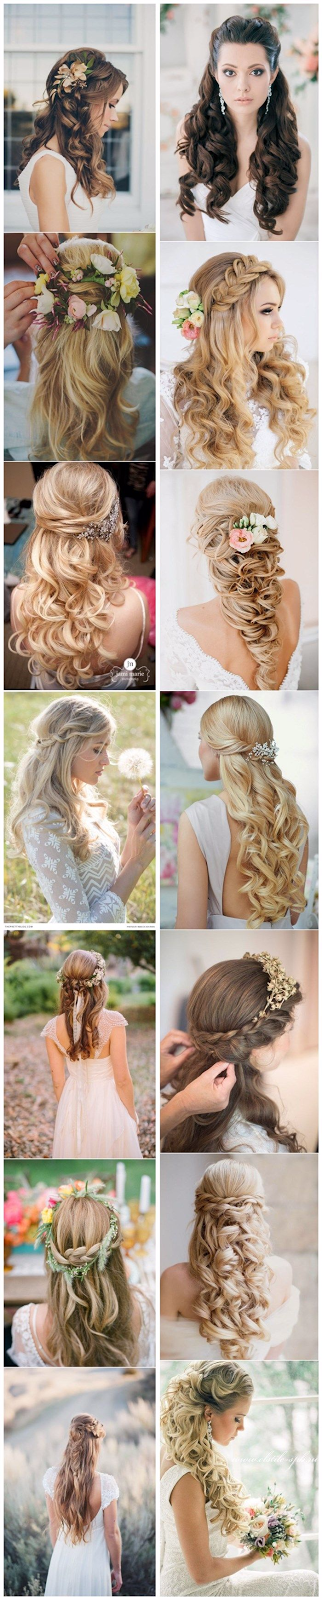 15 Stunning Half Up Half Down Wedding Hairstyles